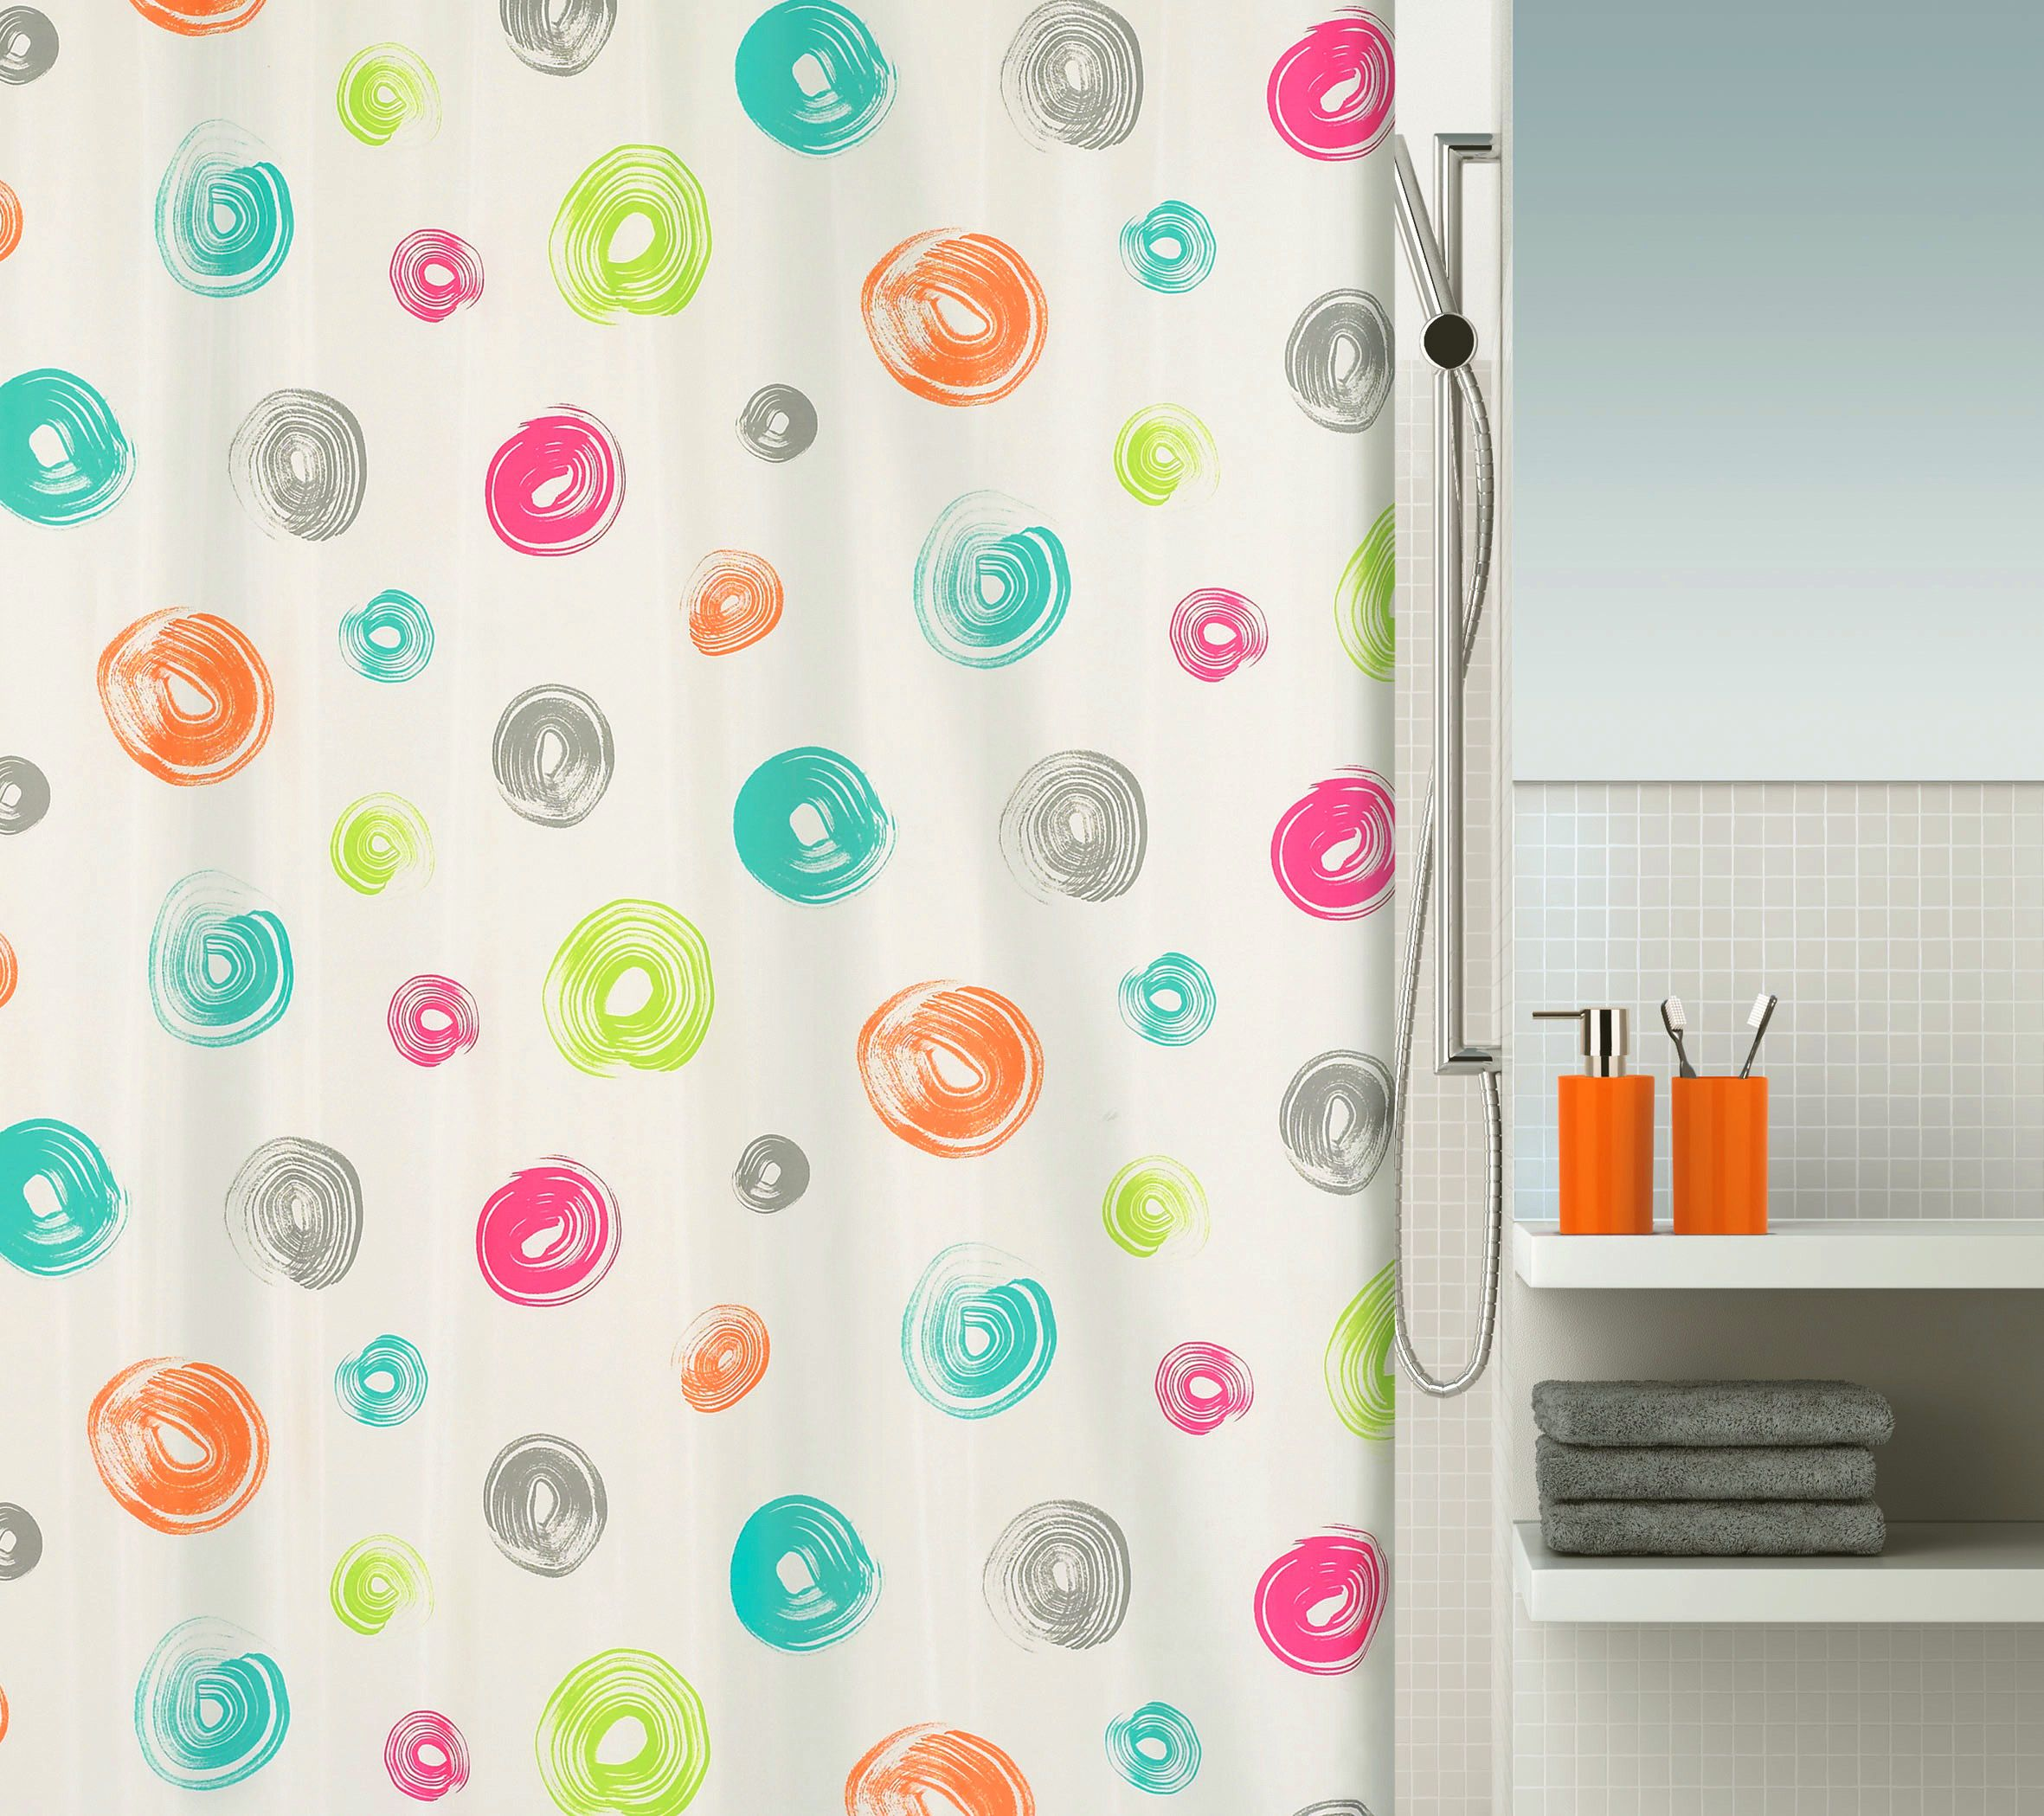 peva bamboo detail design chinese shower pattern manufacturers curtain style supply product